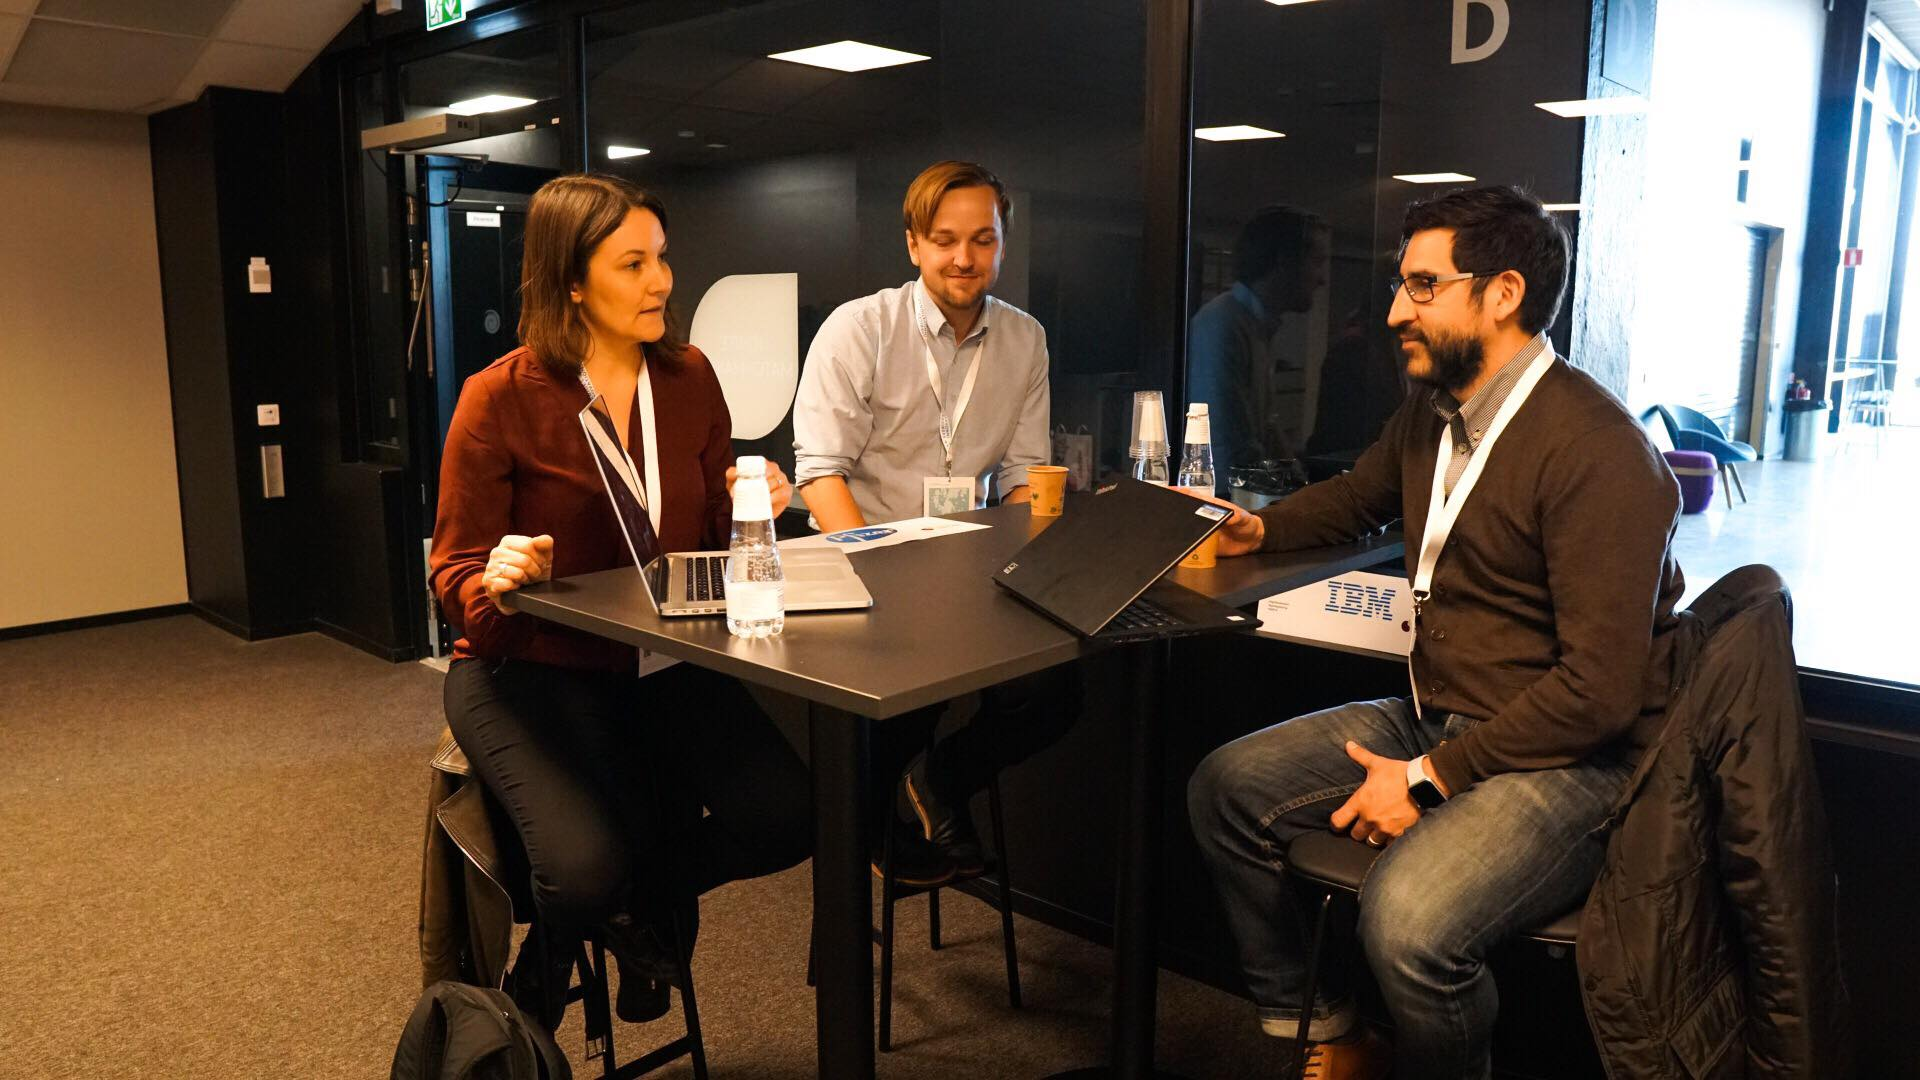 Jaana Nykänen from the gaming startup Divine Robot met 7 companies at the event